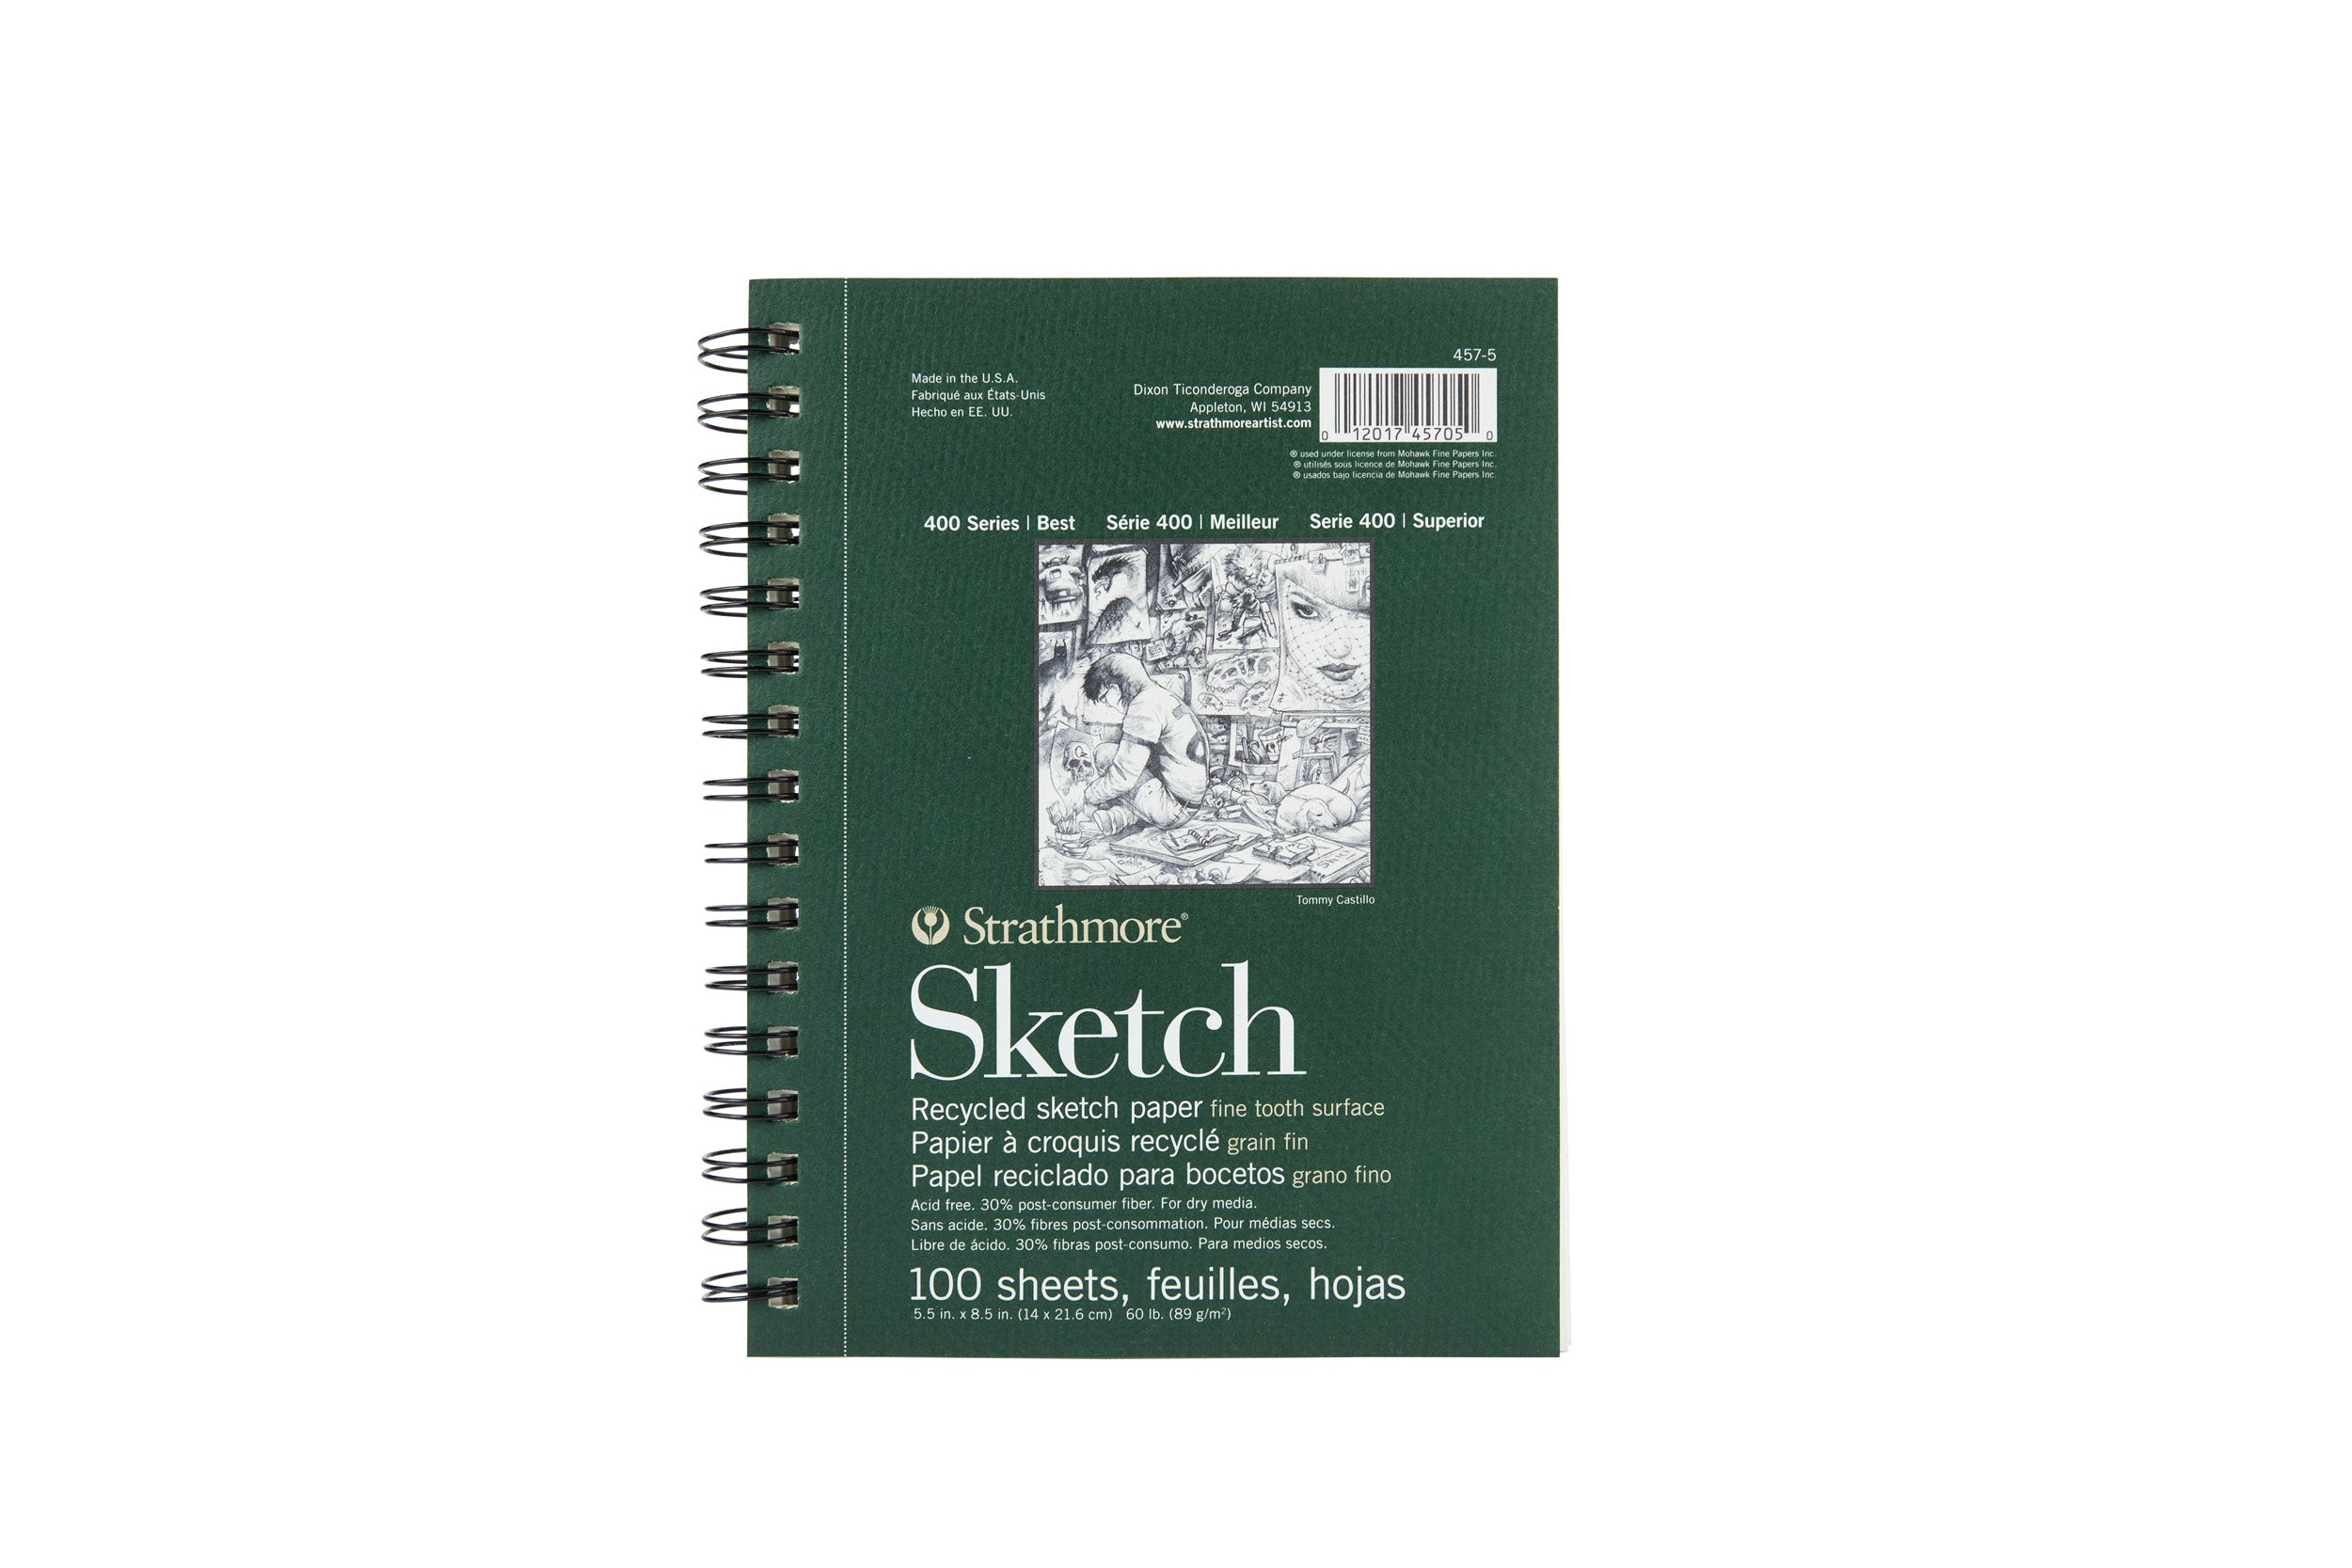 STRATHMORE RECYCLED SKETCHPAPER PADS 400 SERIES